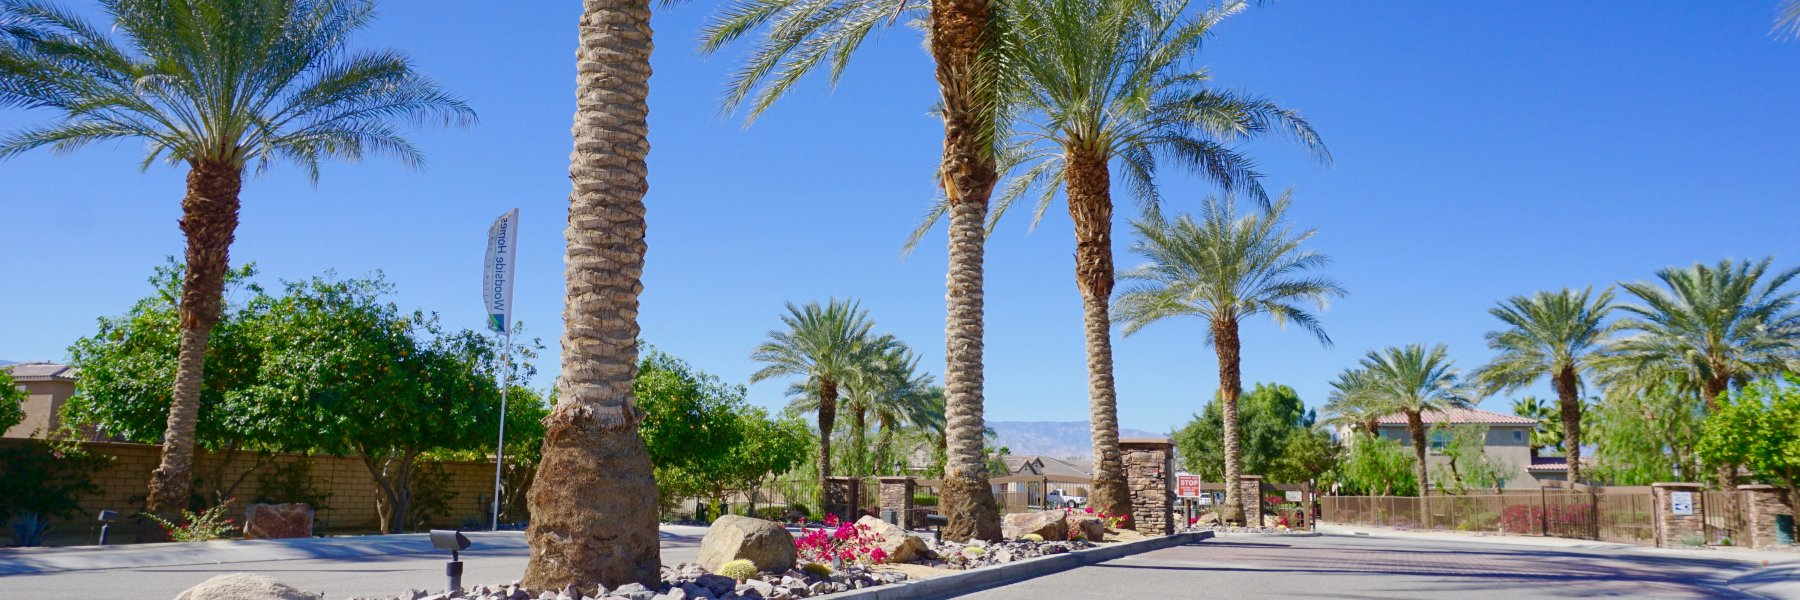 Shadow Hills is a community of homes in Indio California